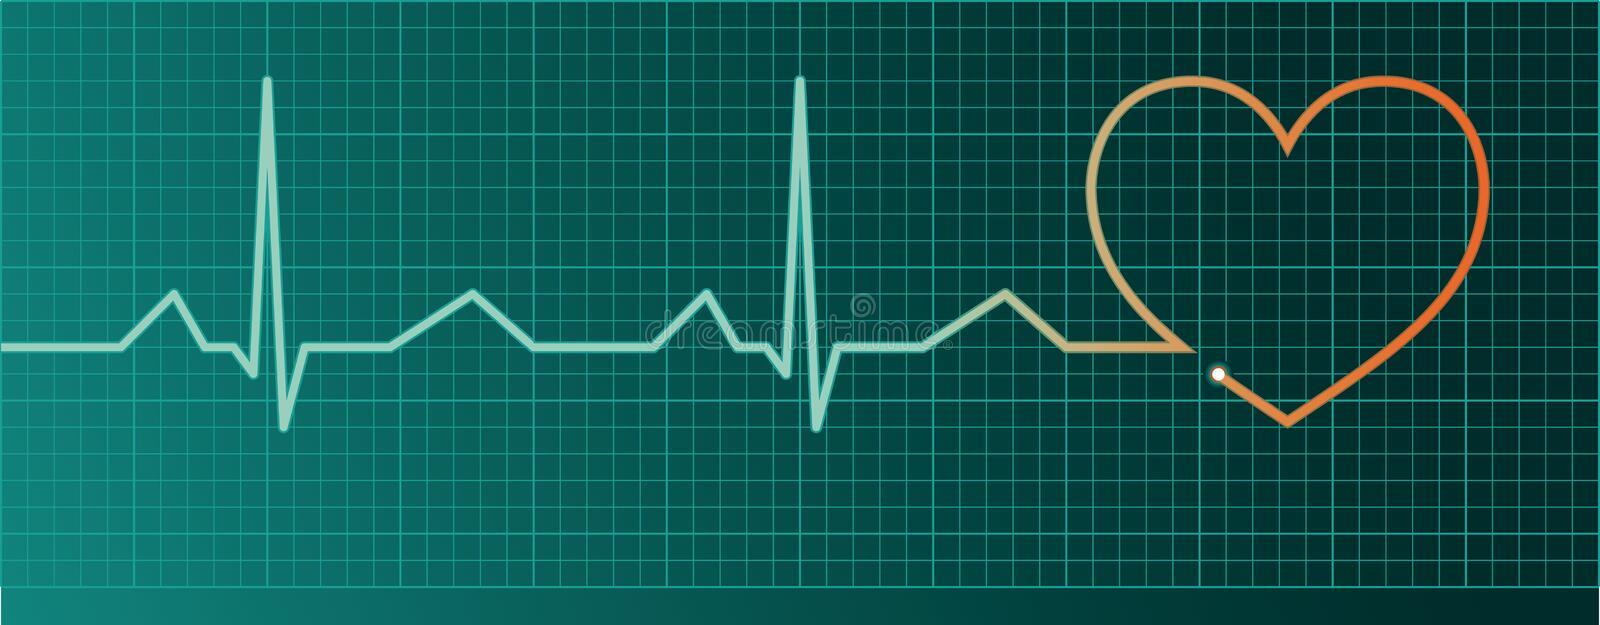 Heart pulse monitor. With red heart shape vector illustration